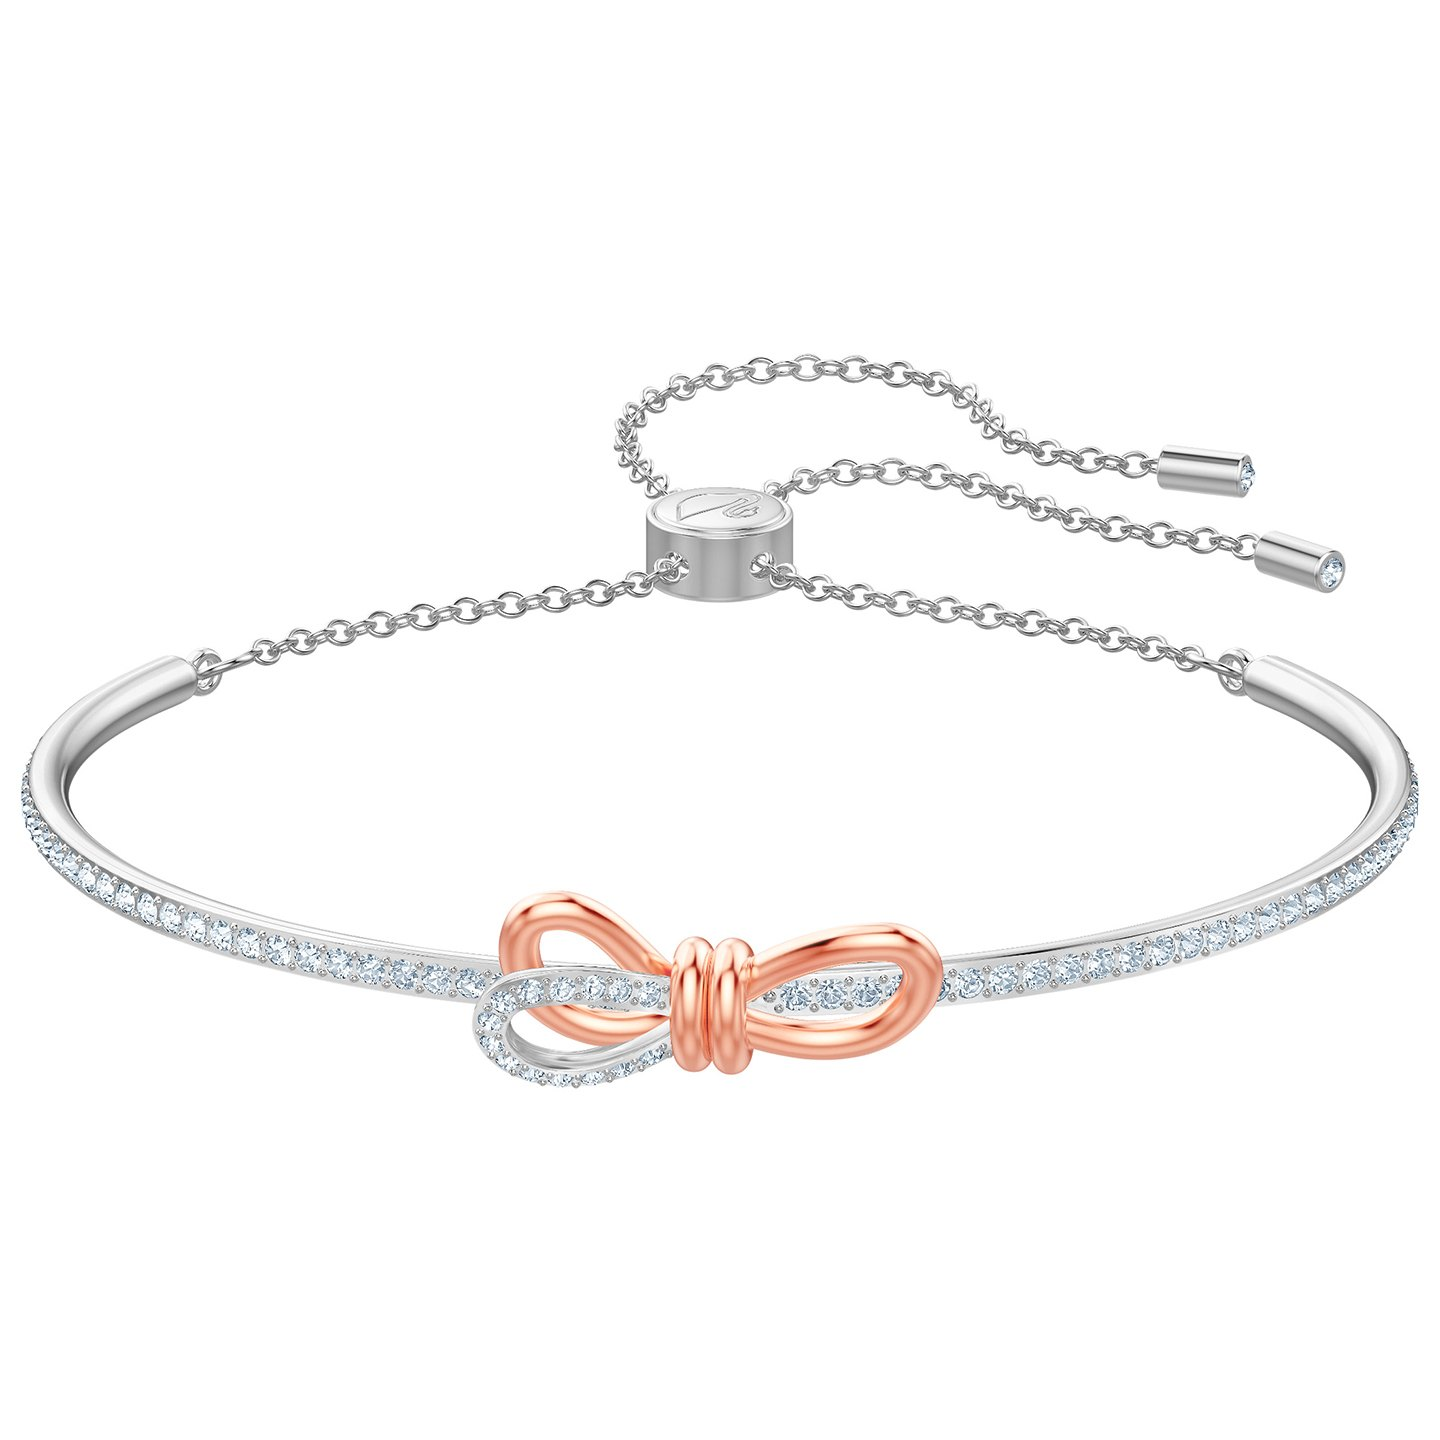 Swarovski 5447079 Armband Lifelong Bow bangle rose- en zilverkleurig